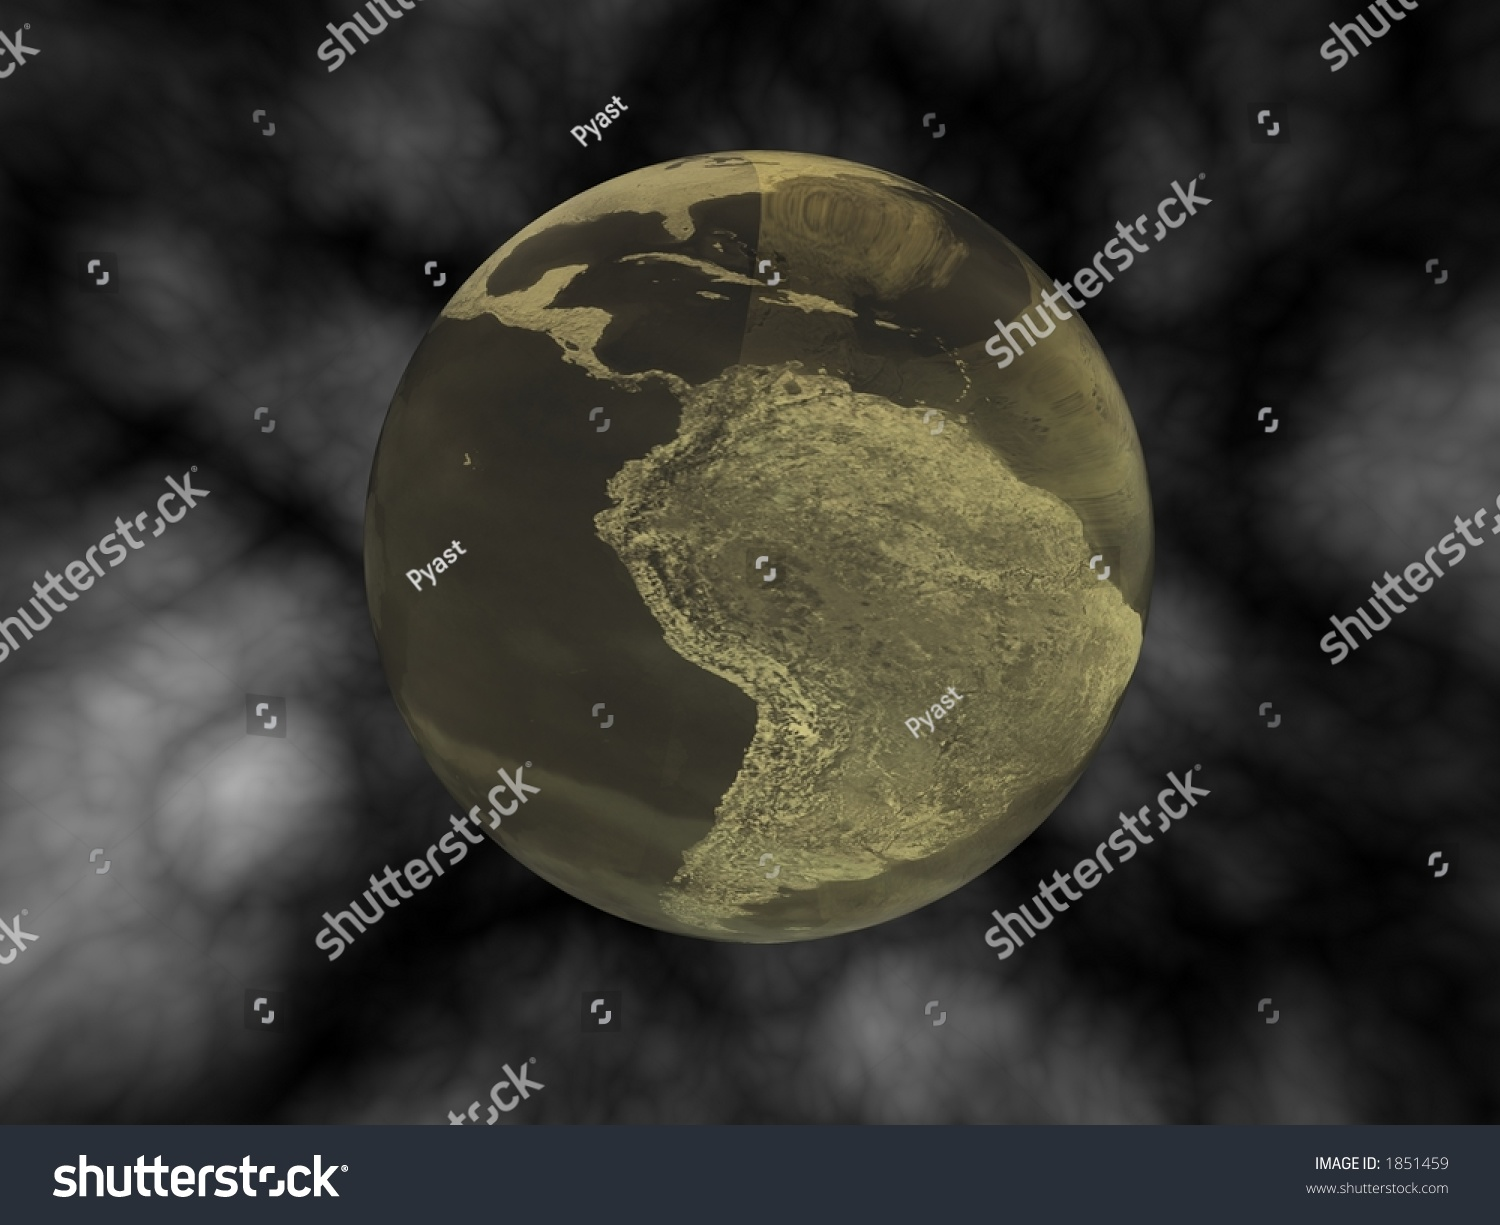 Polluted Planet Earth Stock Photo 1851459 : Shutterstock